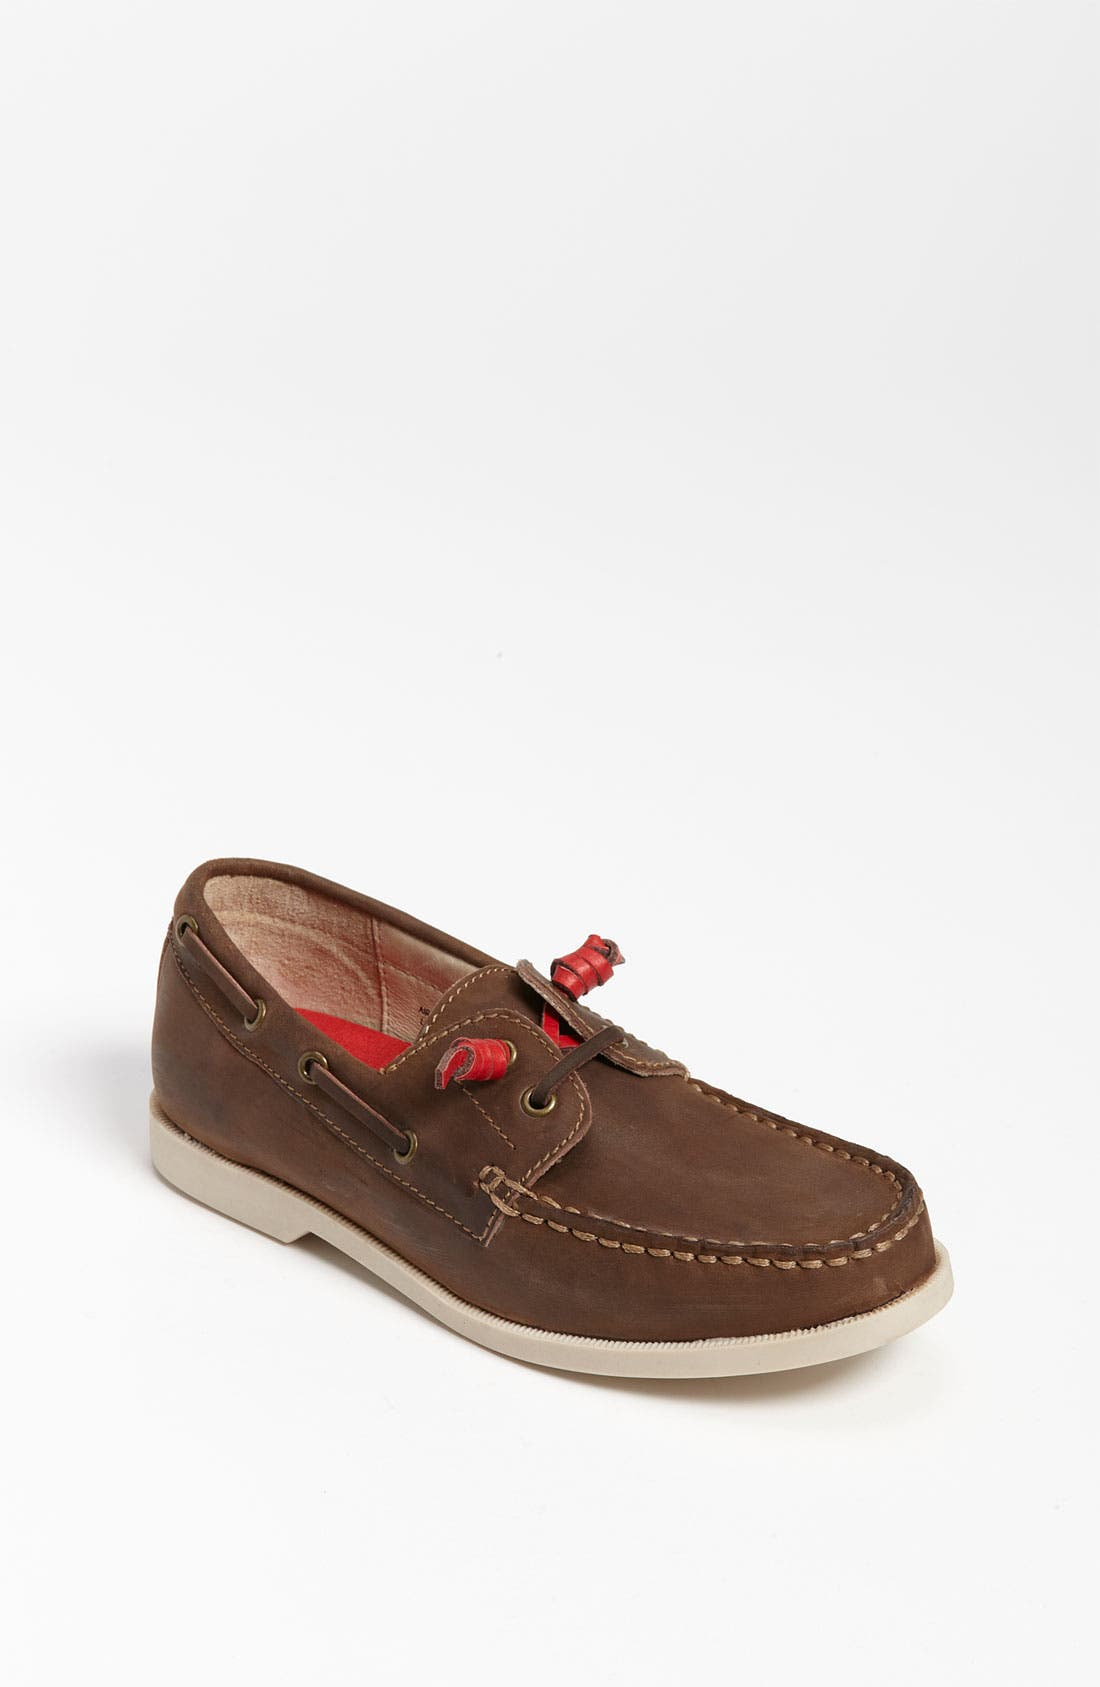 Main Image - Cole Haan 'Air Boat' Oxford (Little Kid & Big Kid)